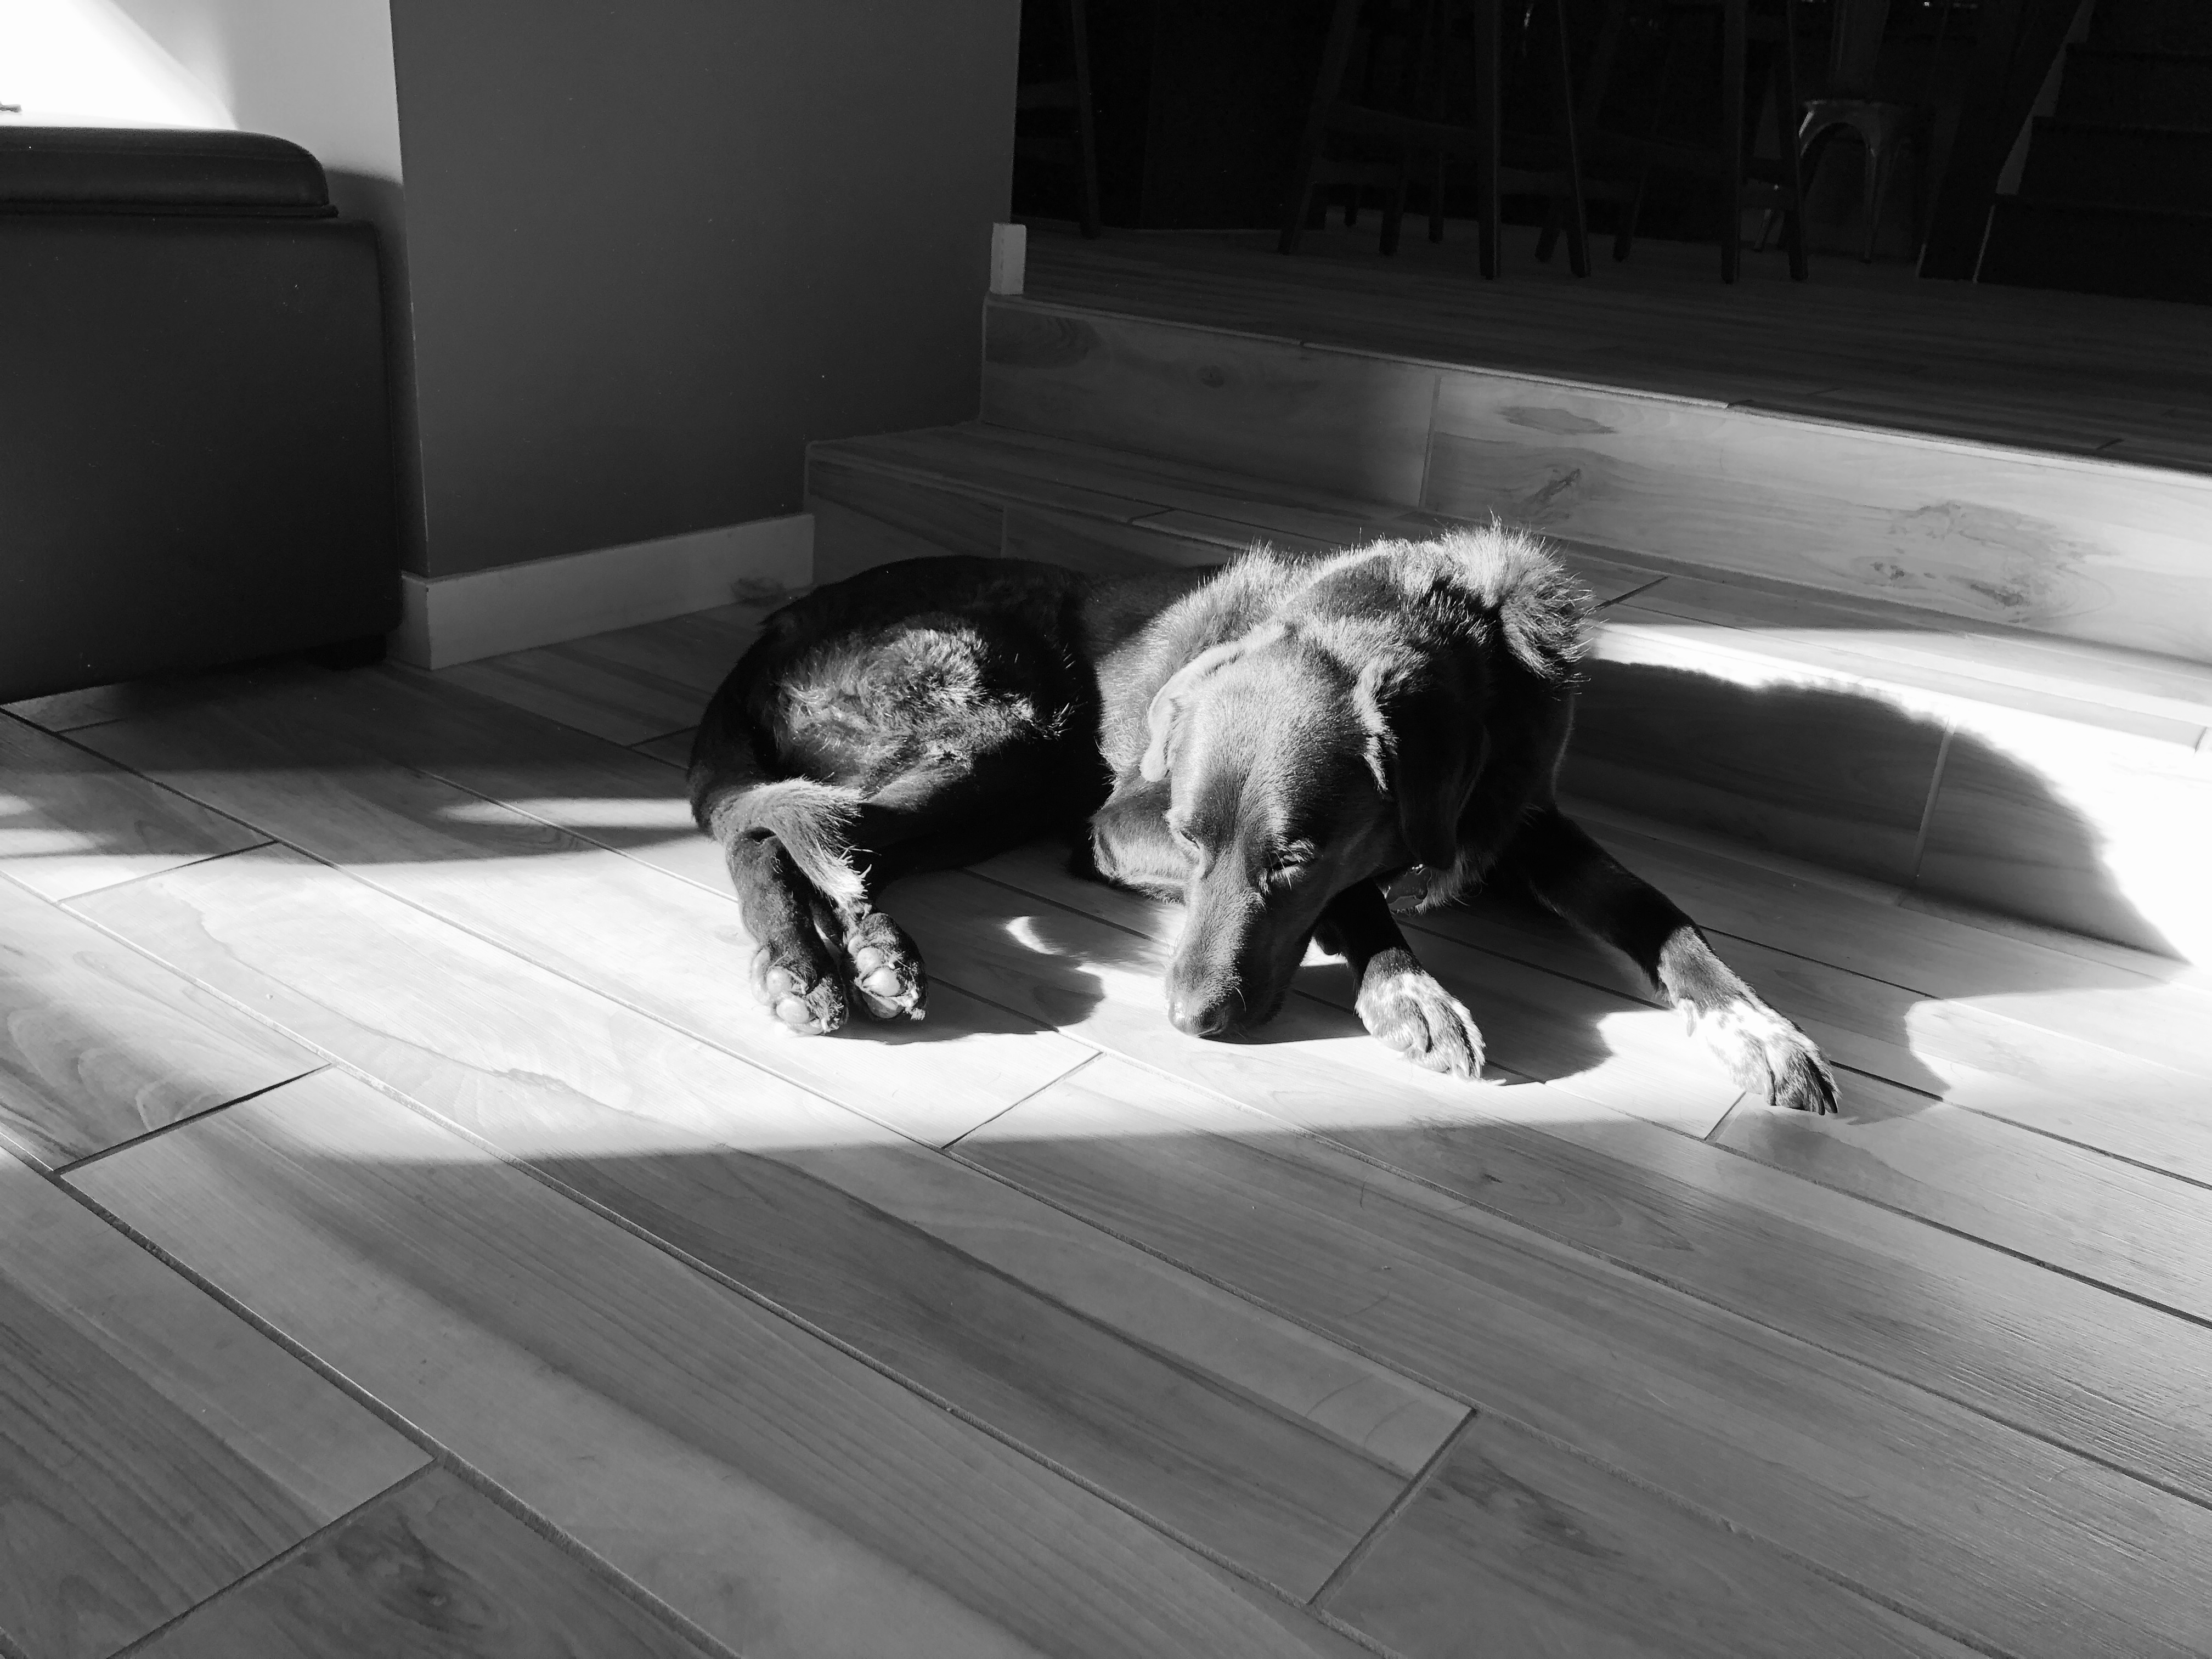 Monochrome photo of a dog laying on the floor in a bright sunbeam